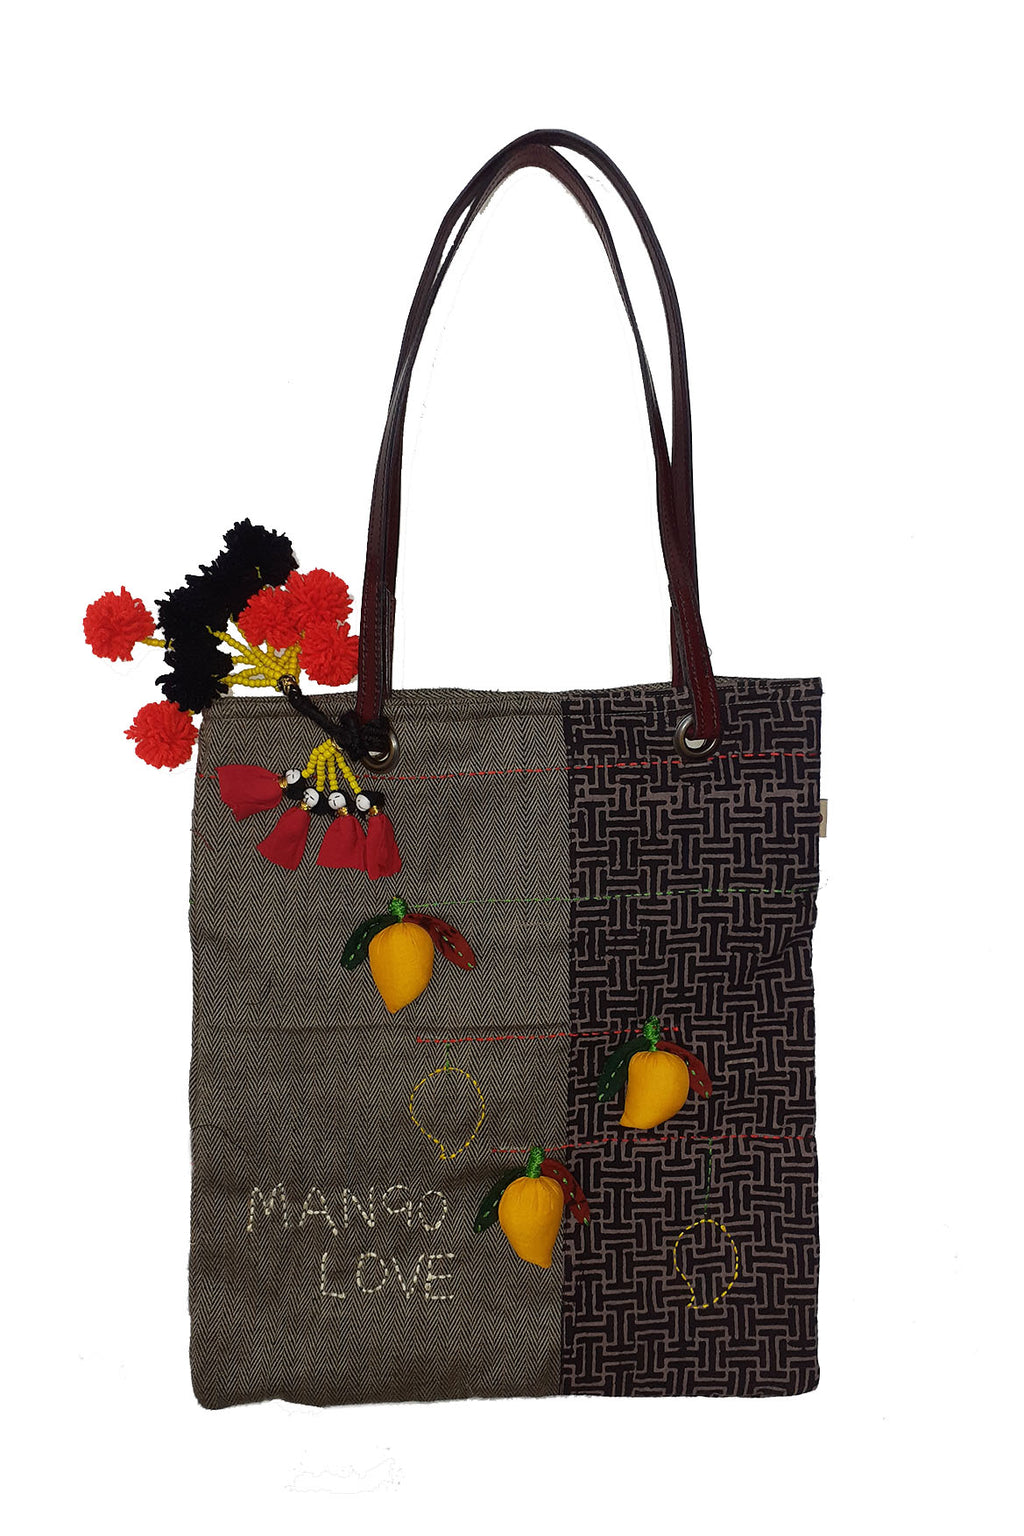 3D Organic cotton tote bag - MANGO - Upasana Design Studio